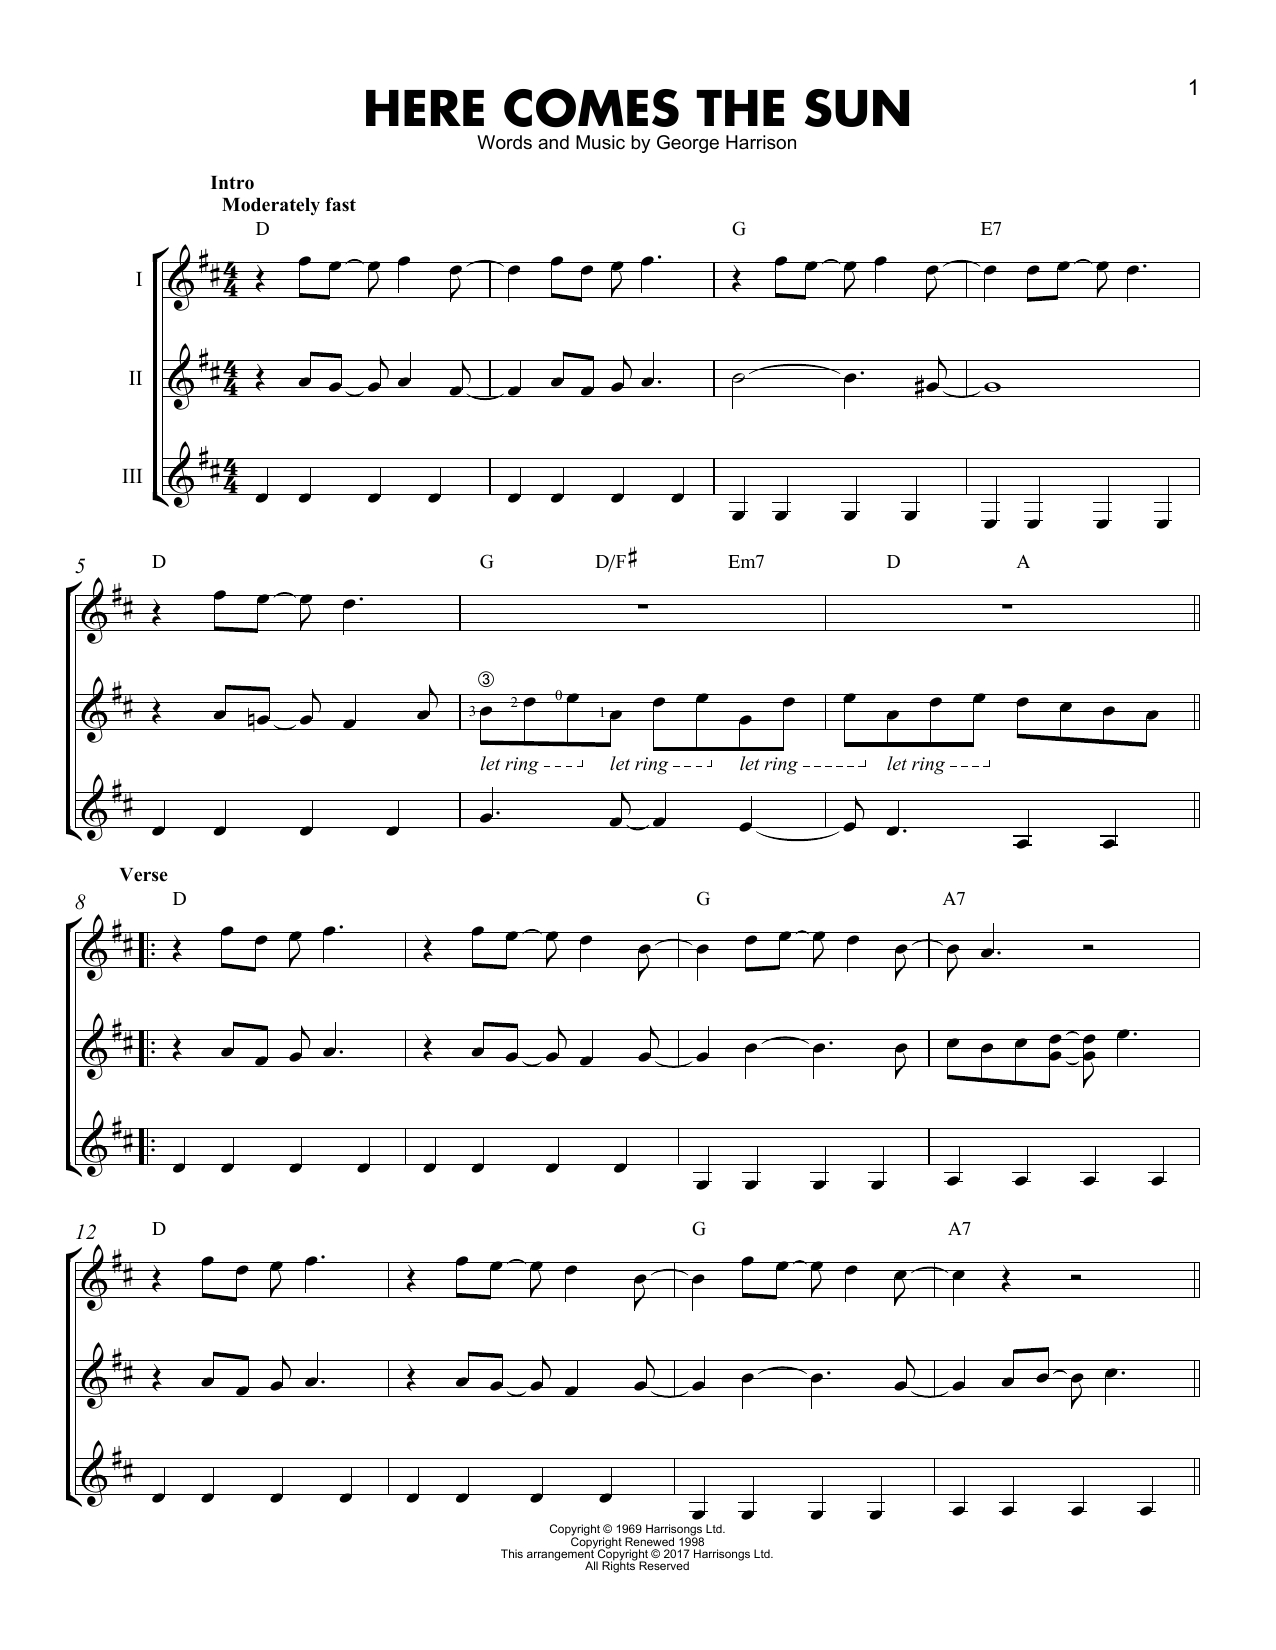 Here Comes The Sun Chords Here Comes The Sun Guitar Ensemble Print Sheet Music Now